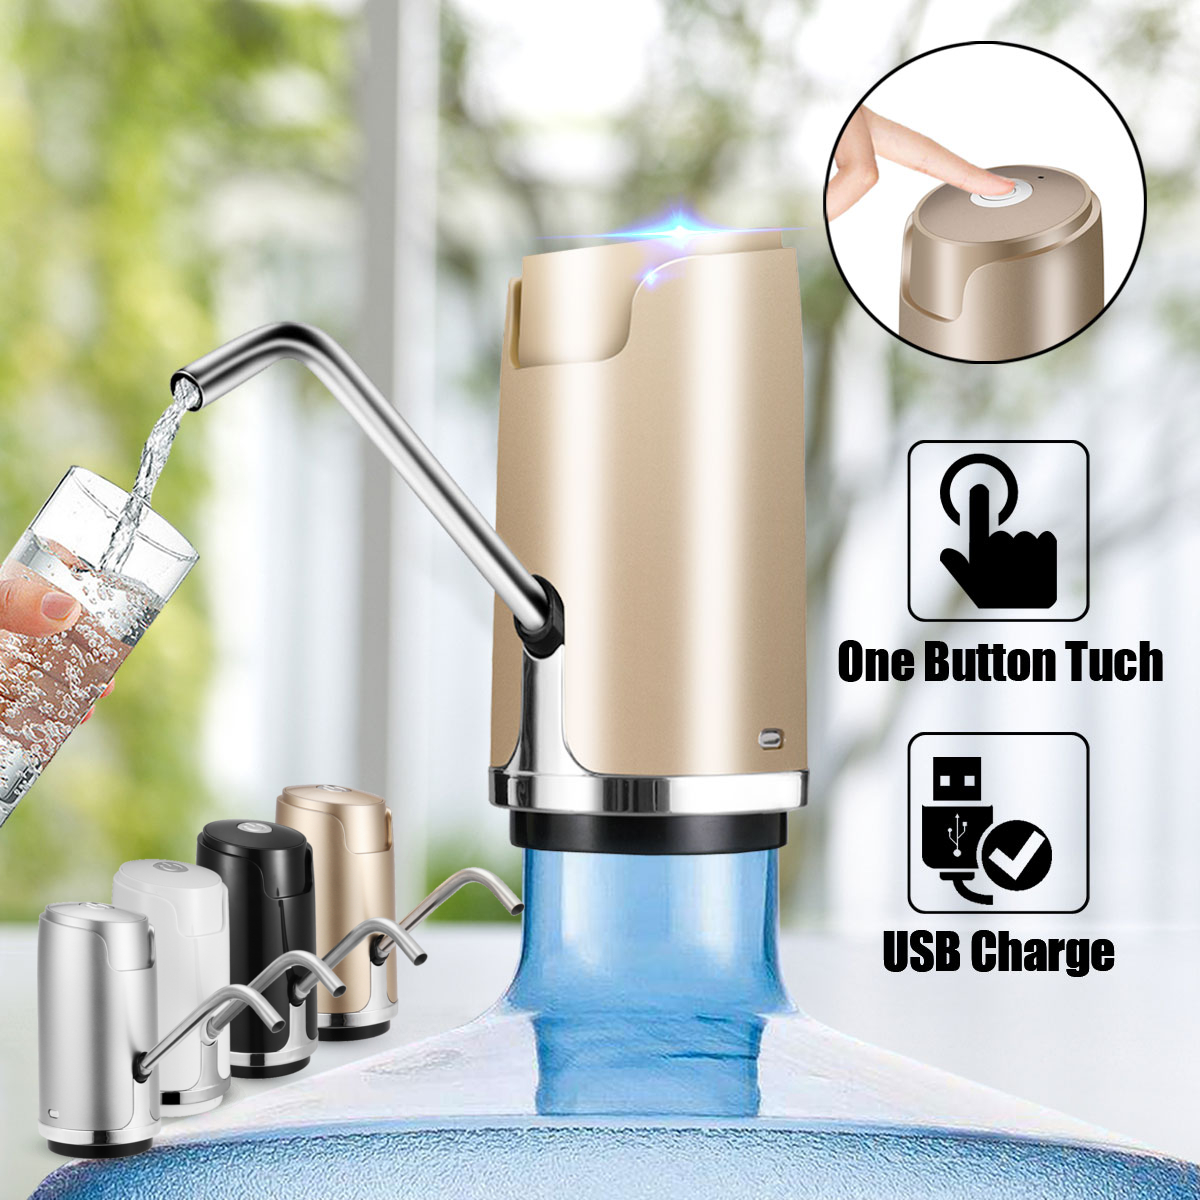 Automatic Wireless USB Rechargeable Electric Gallon Bottle Water Pump Drinking Pure Water Dispenser Bottle Switch1800mah electric water dispenser portable gallon drinking bottle switch smart wireless water pump water treatment appliances